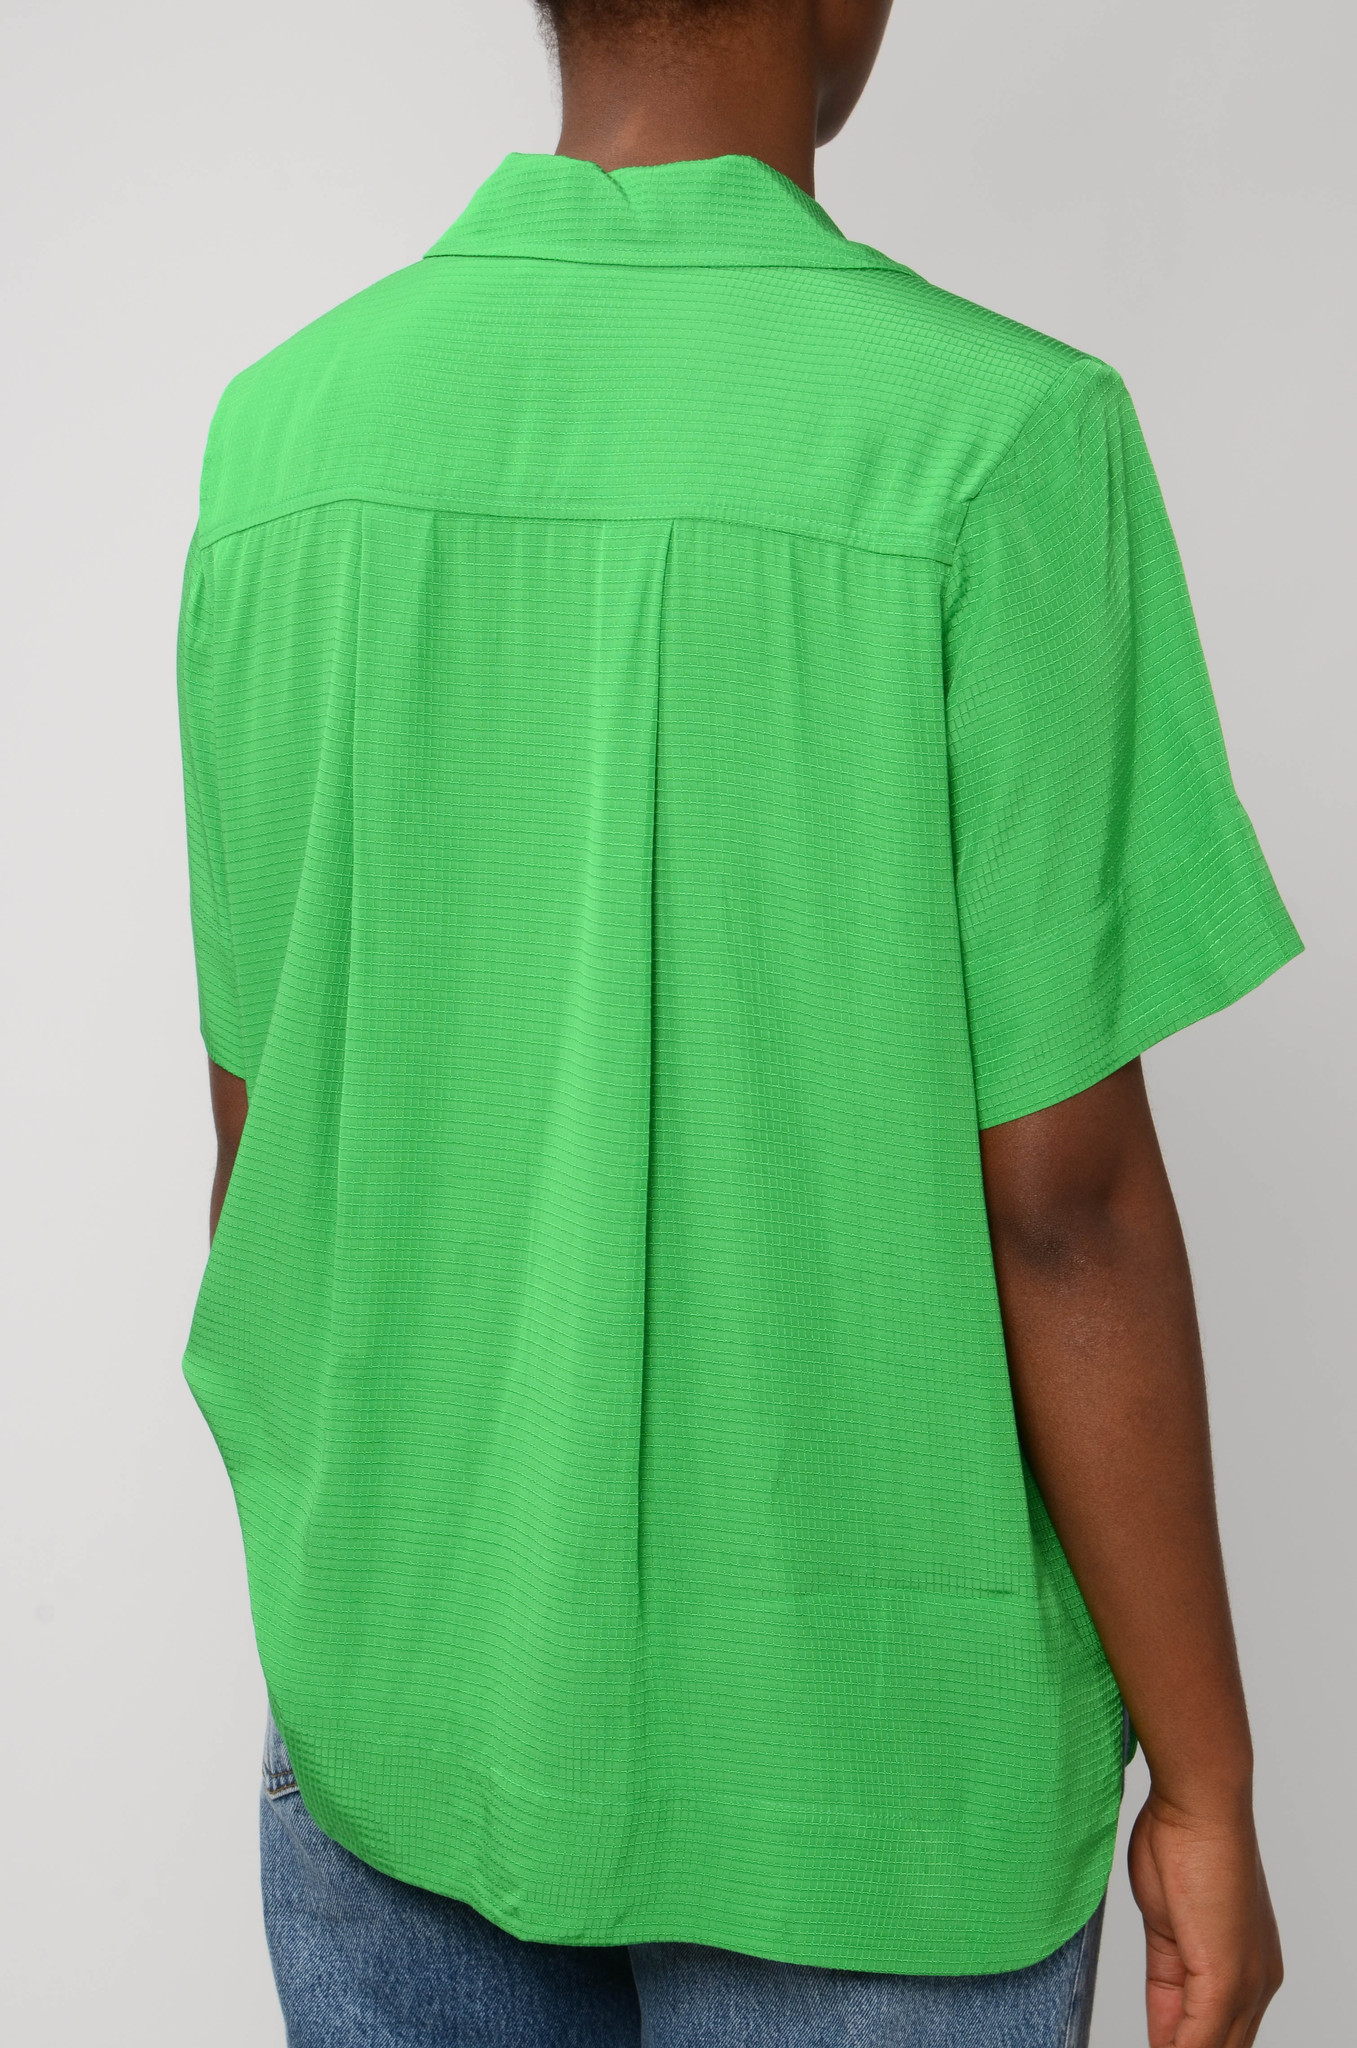 RIPSTOP SHIRT IN KELLY GREEN-4